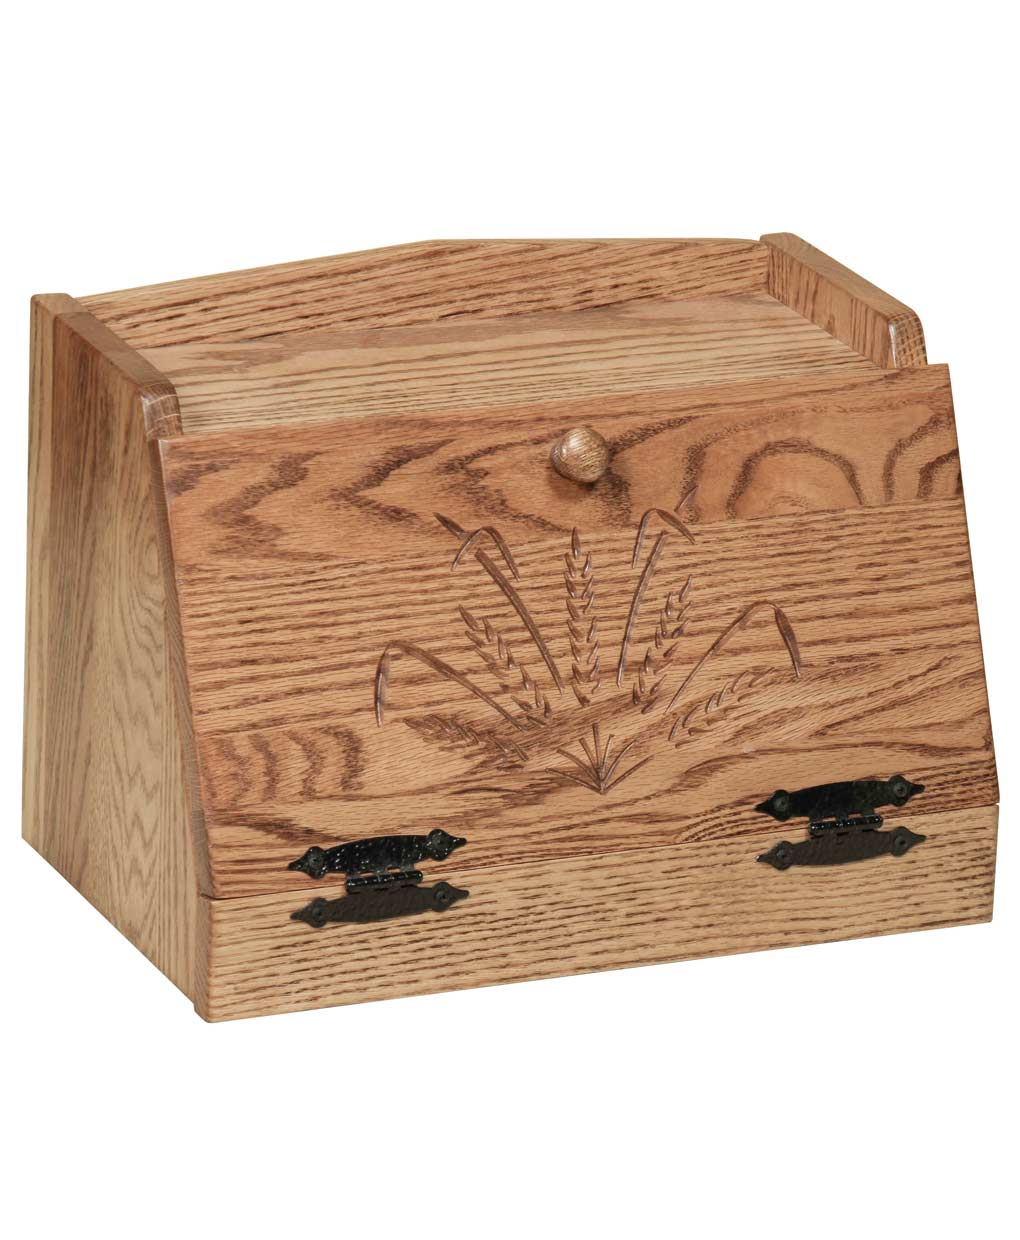 Oak Top Bread Box With Wheat Carvings Amish Direct Furniture